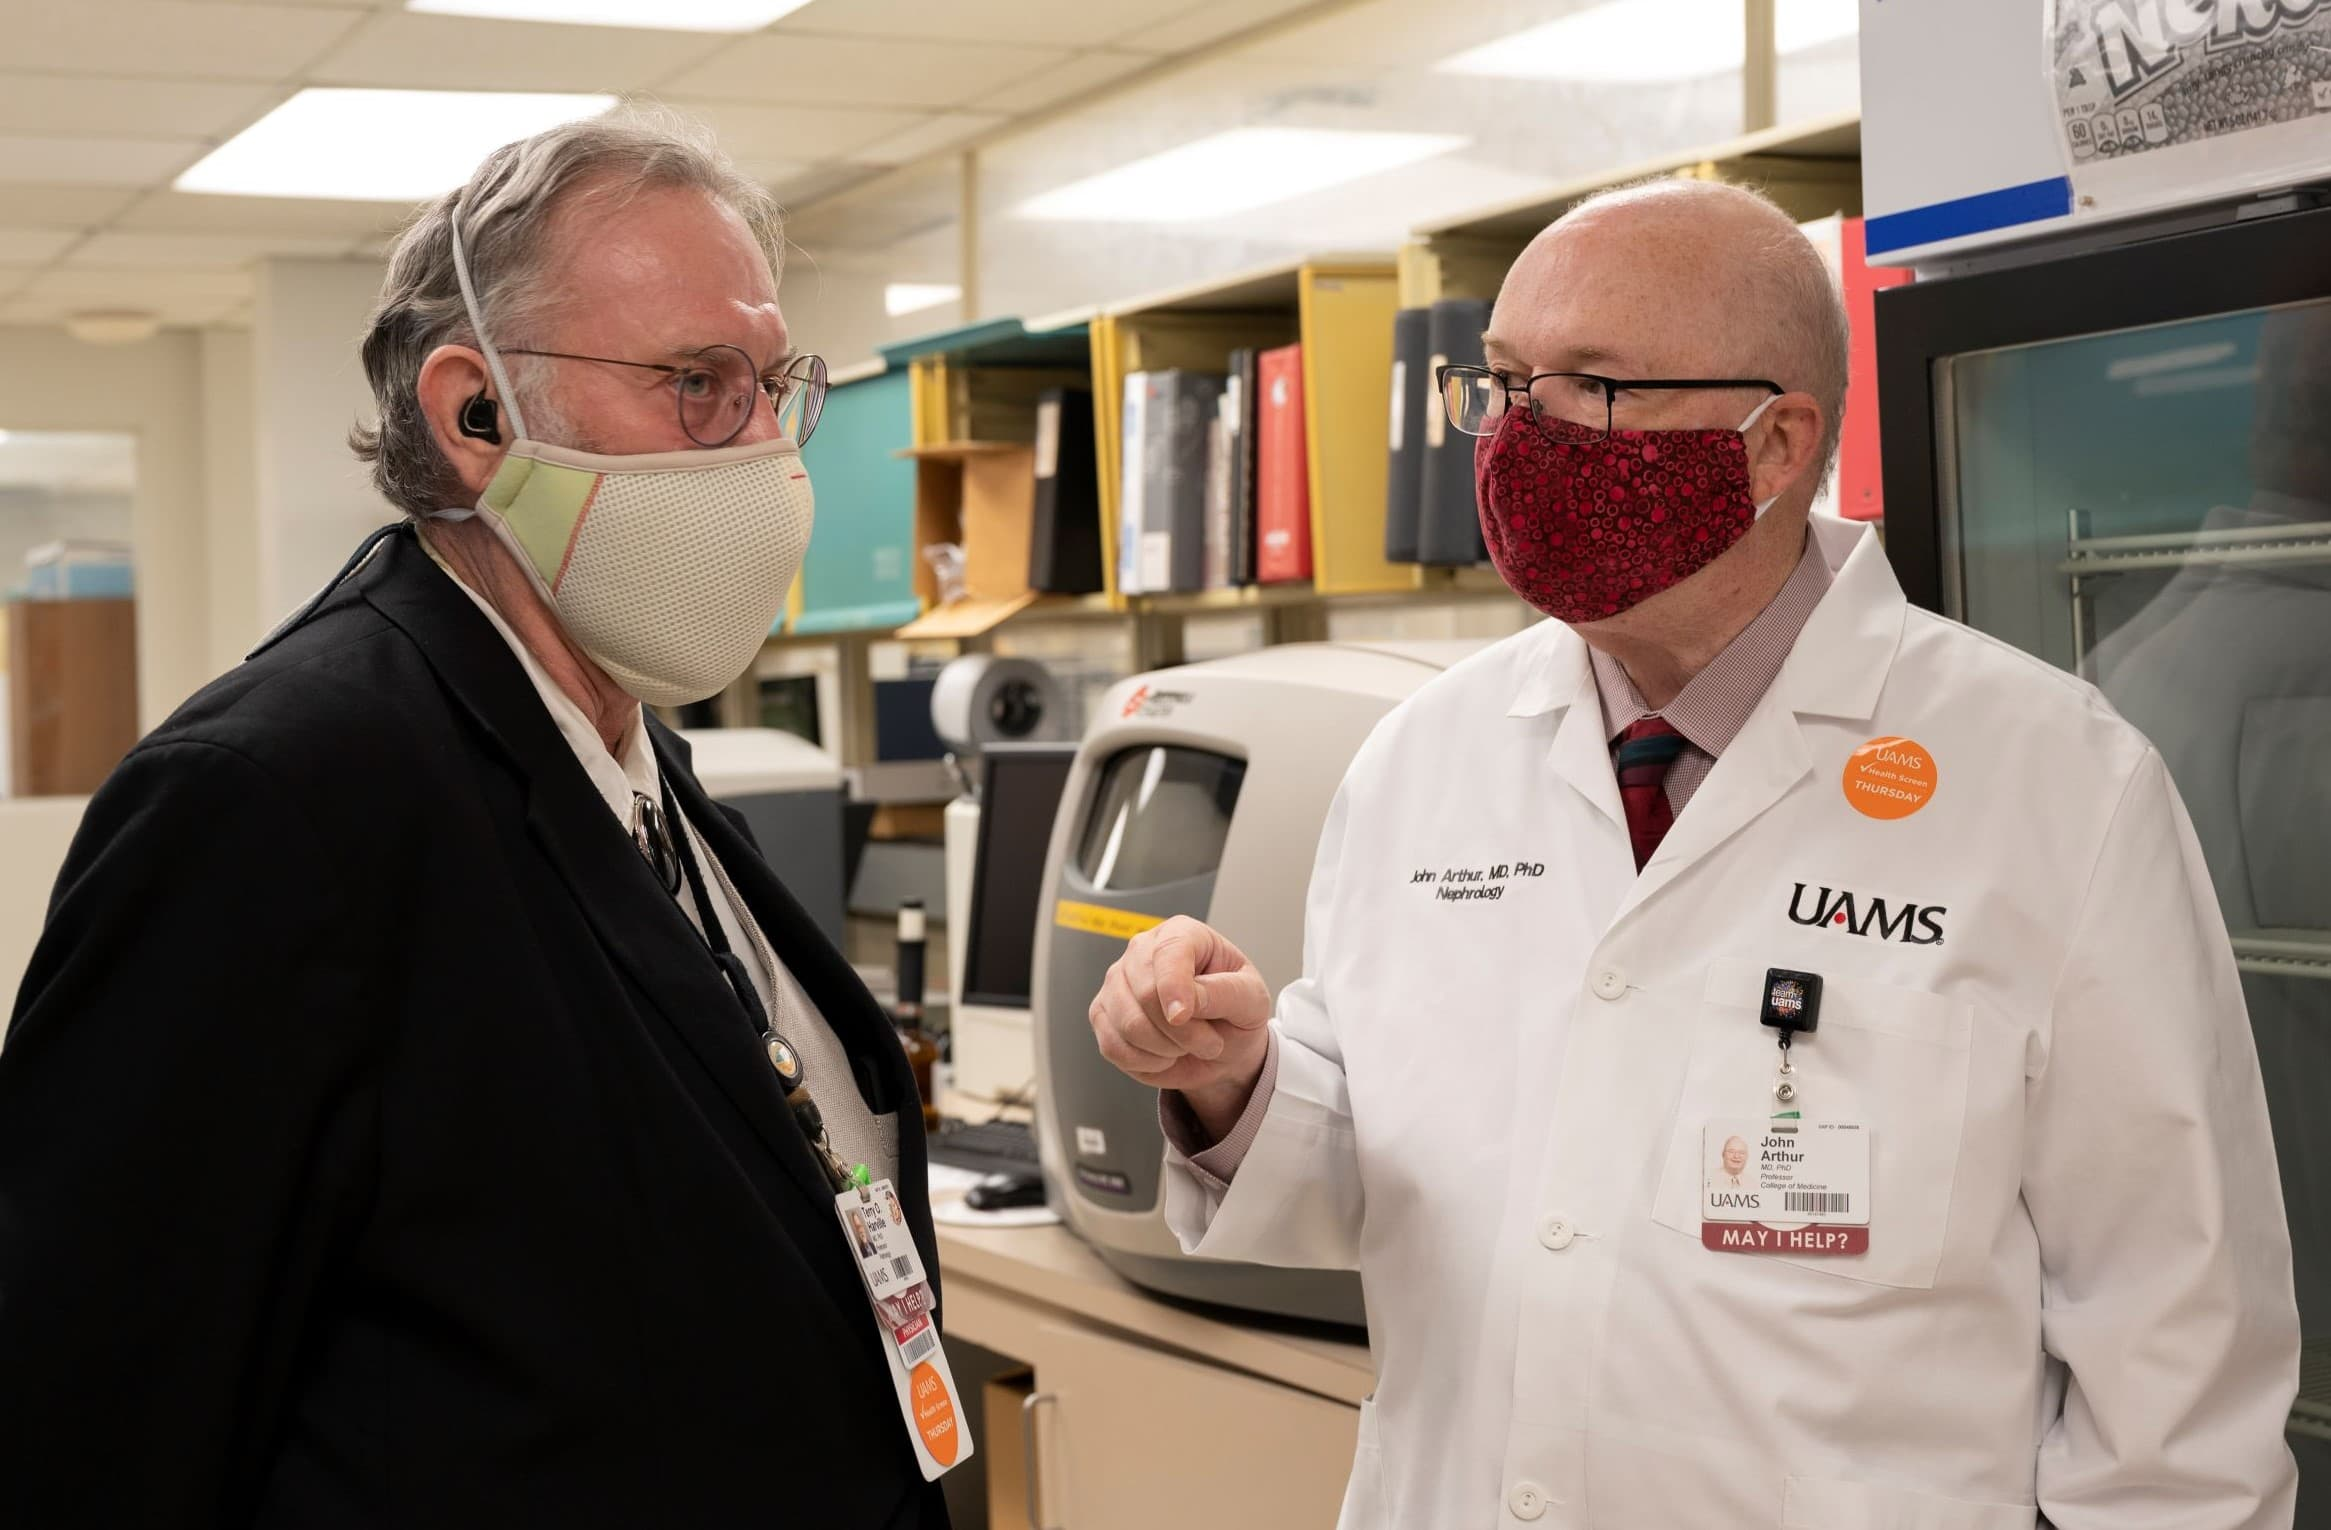 Terry Harville, M.D., Ph.D., consults with John Arthur, M.D., Ph.D., in the UAMS Pathology Lab.